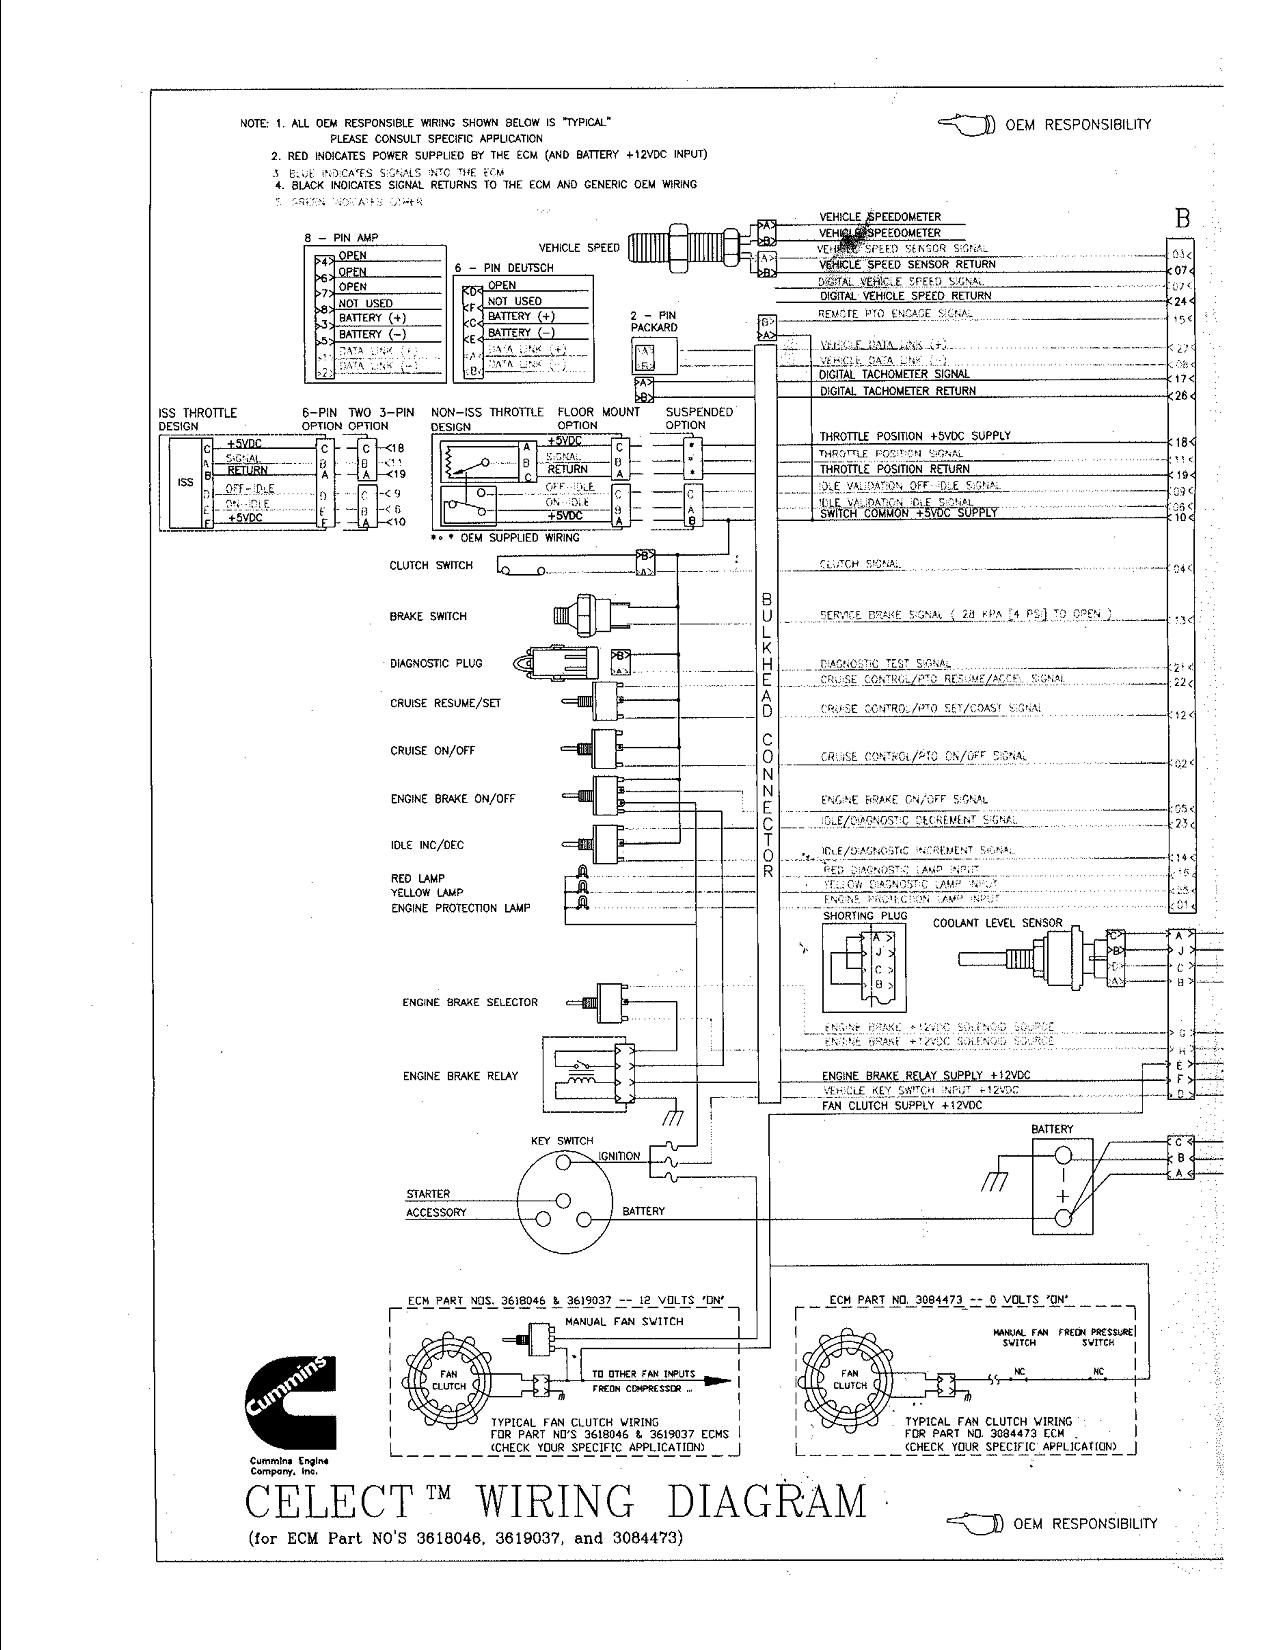 wiring diagram for peterbilt 379 the wiring diagram peterbilt 379 sdometer wiring diagram peterbilt discover your wiring diagram